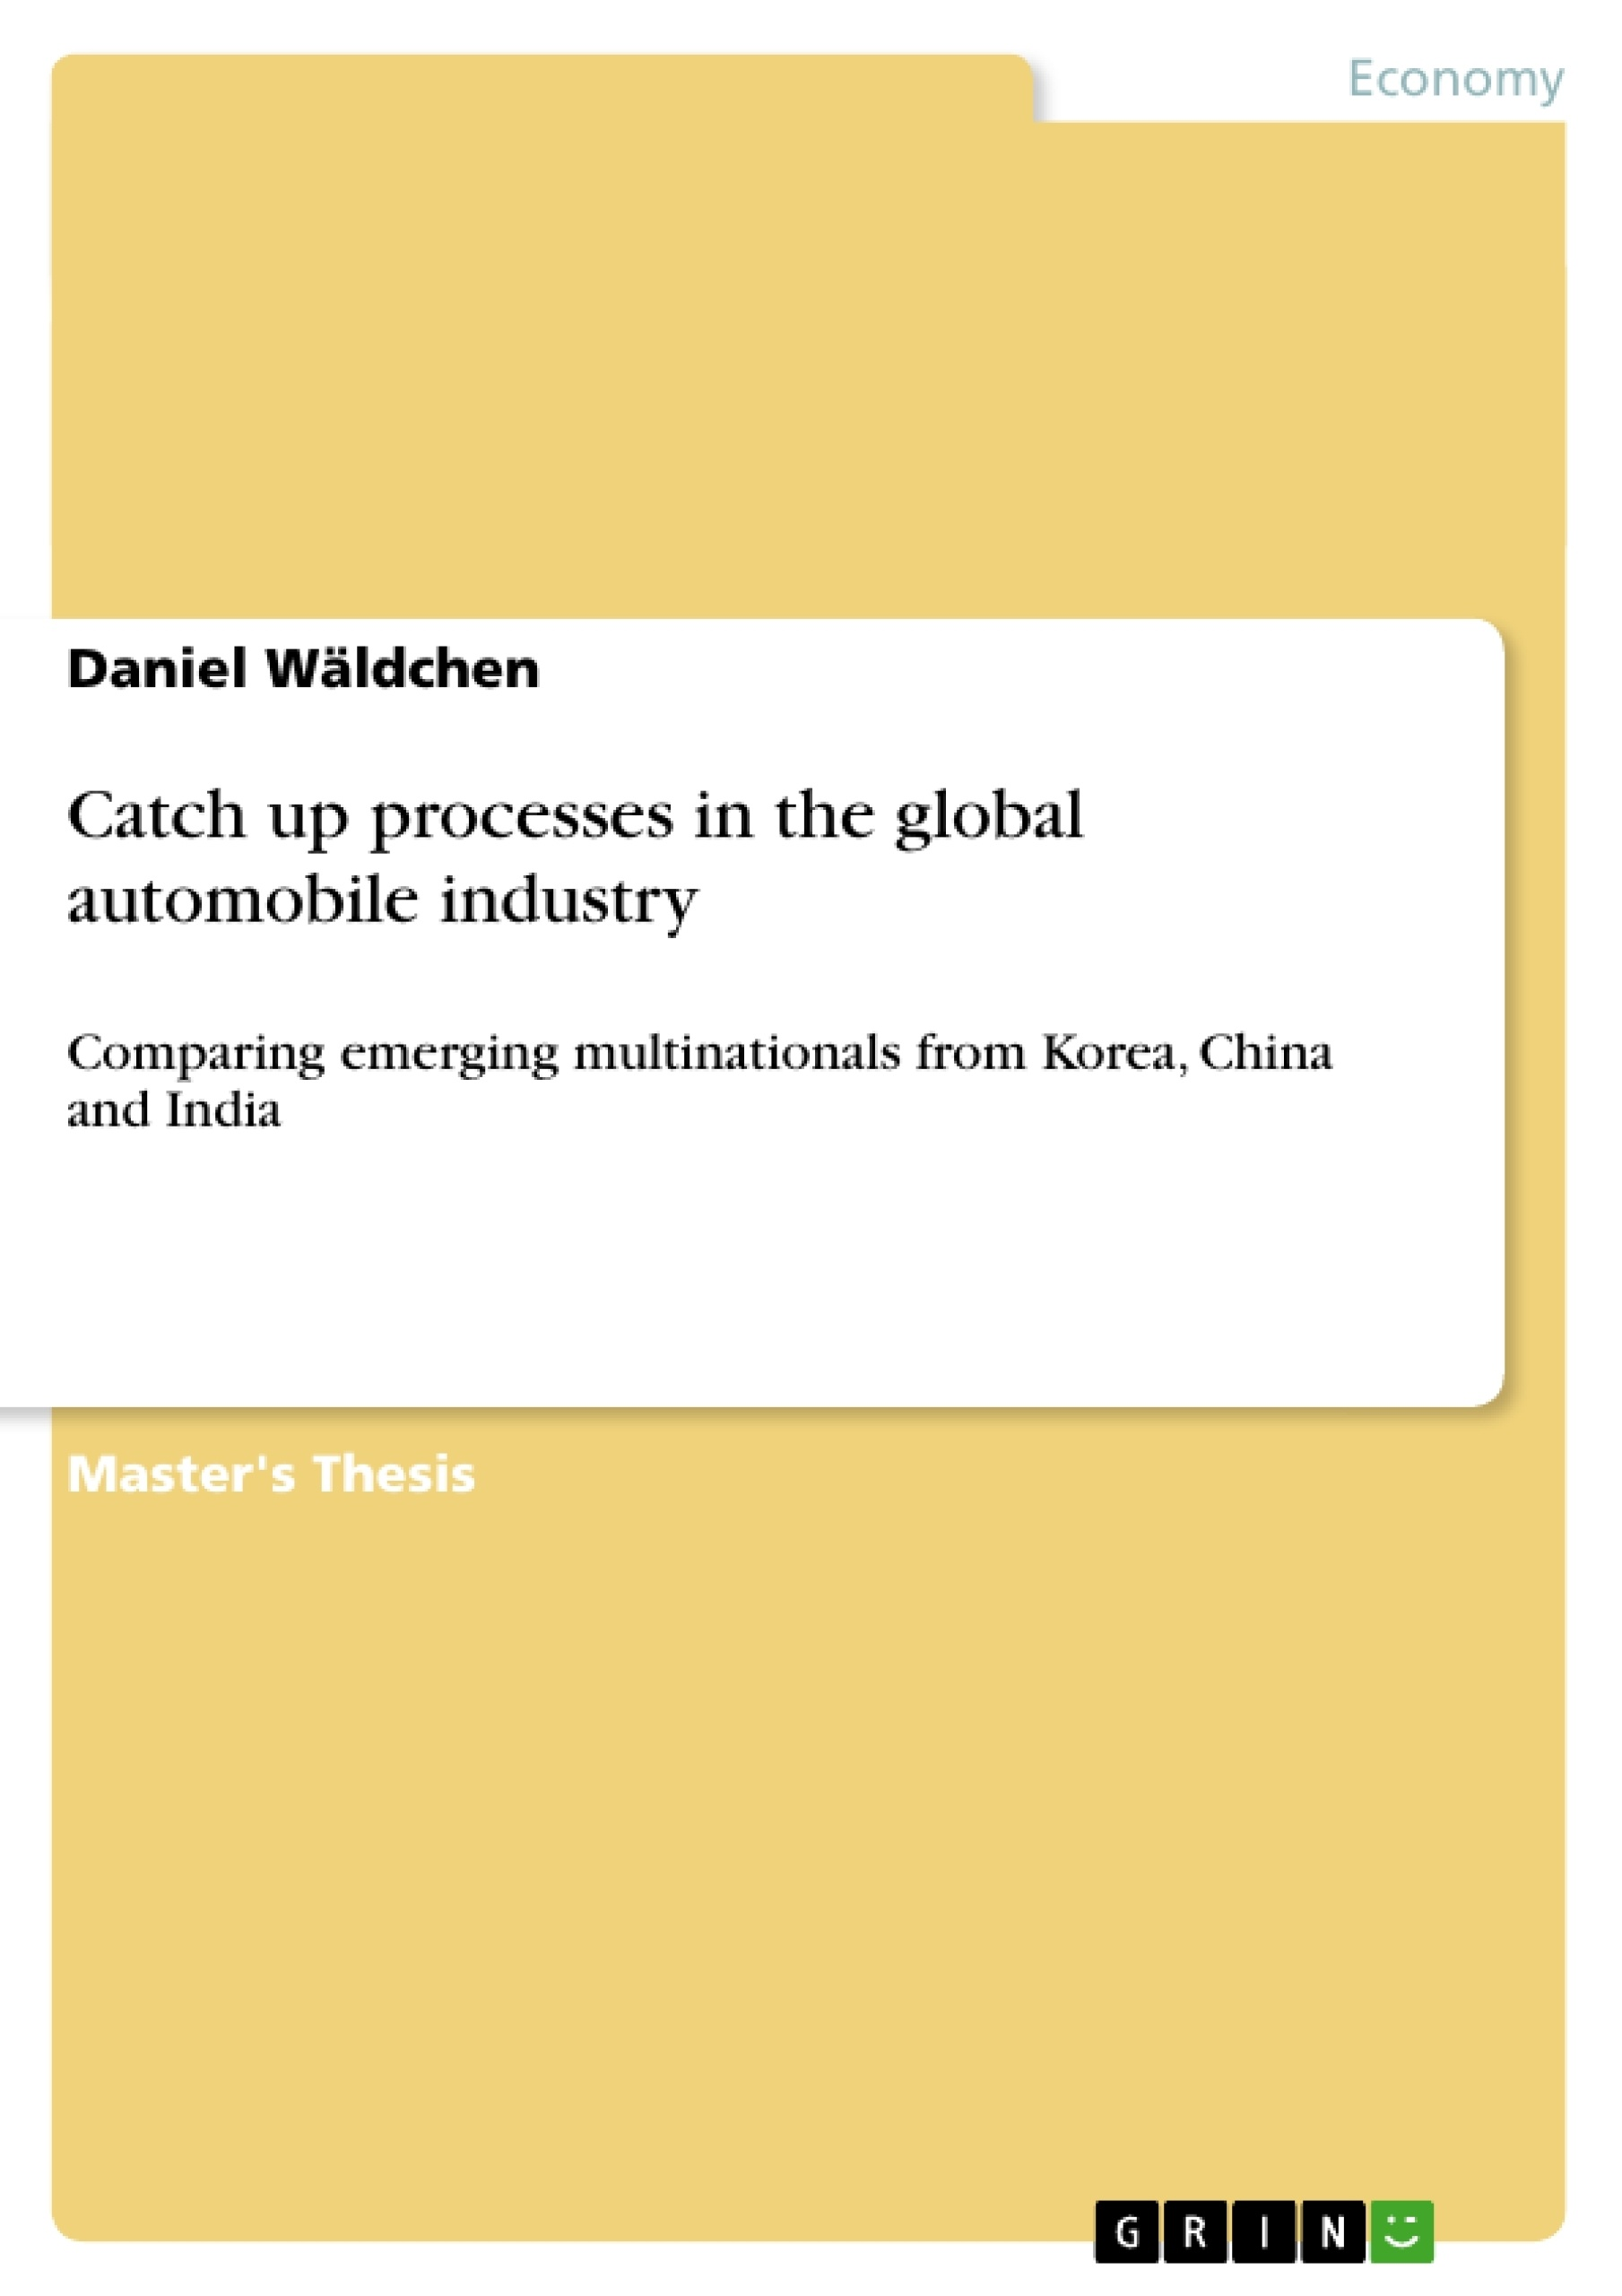 Title: Catch up processes in the global automobile industry